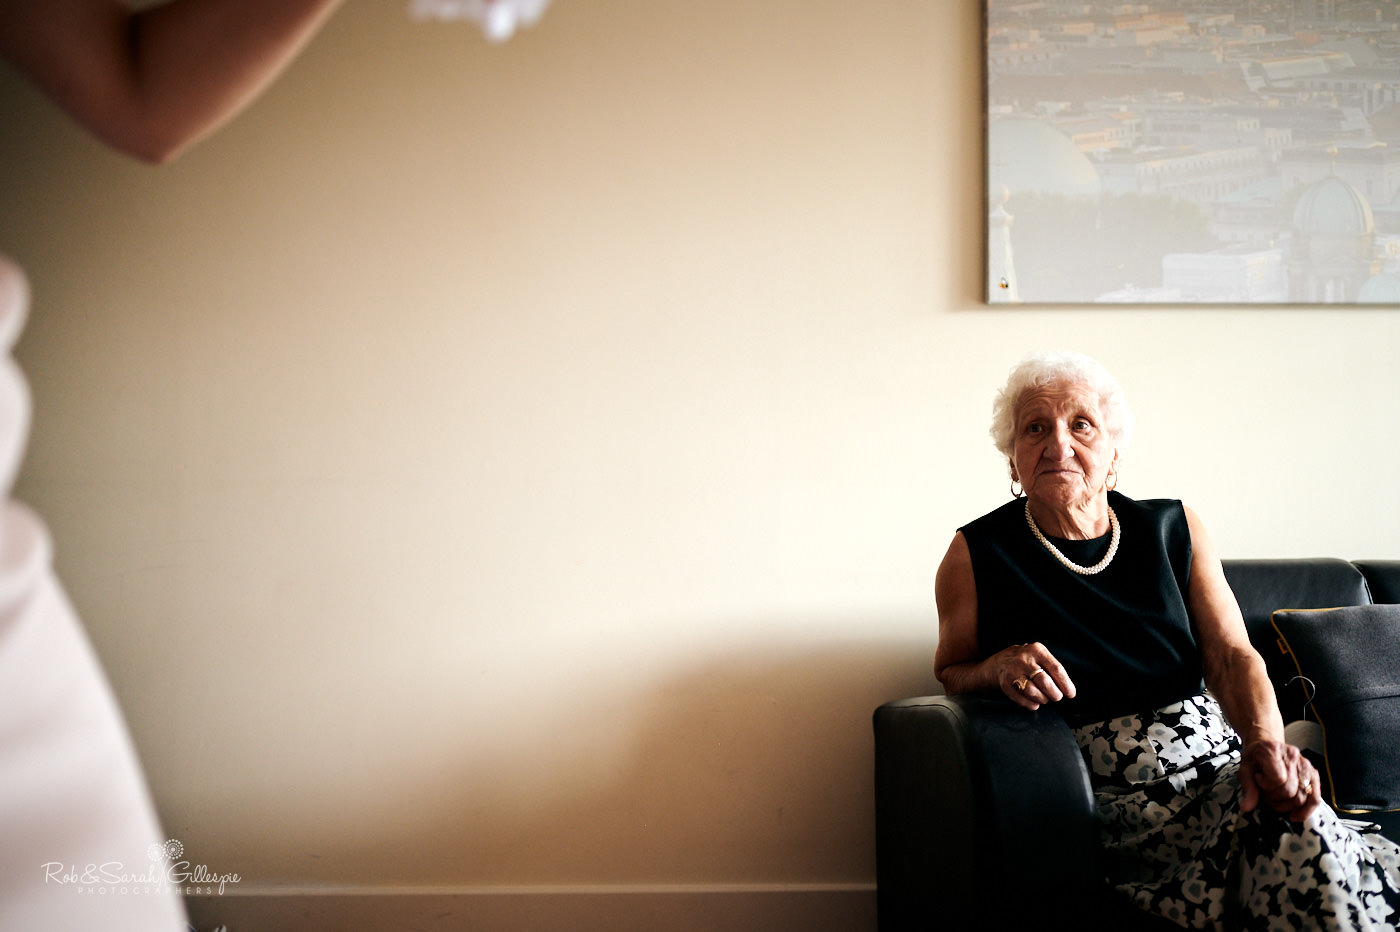 Grandmother looks on as bride prepares for wedding